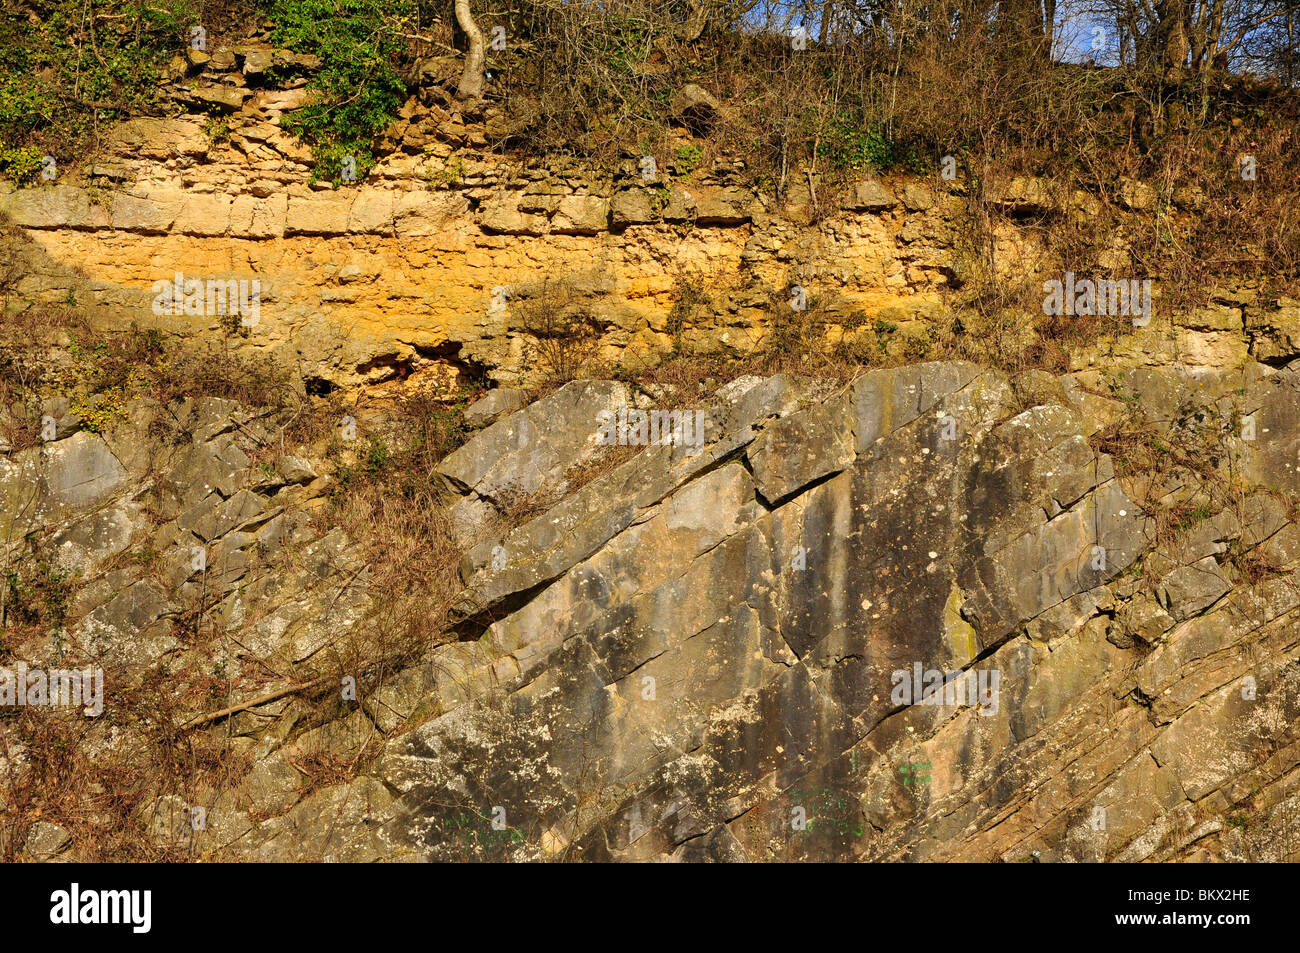 De la Beche geological unconformity Yellow inferior Oolite Limestone rests on a steeply dipping grey Carboniferous - Stock Image